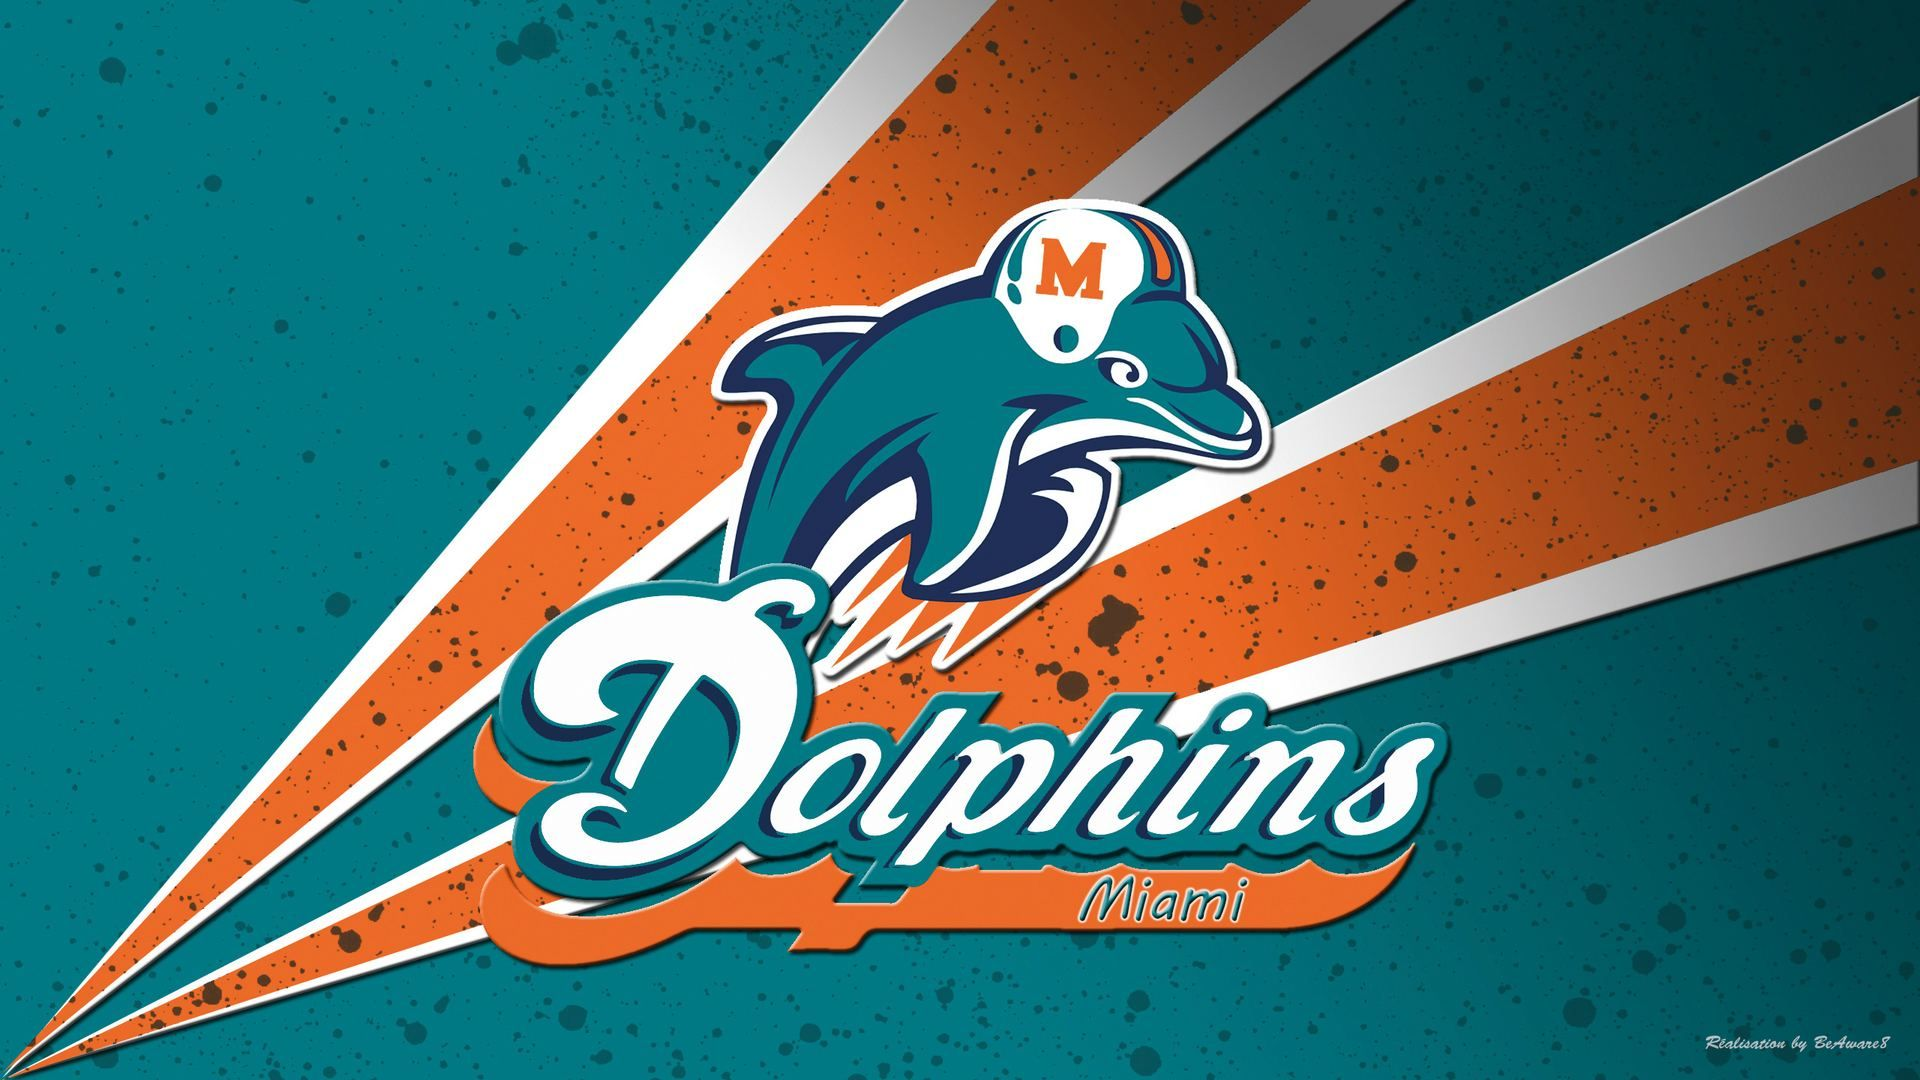 Miami dolphins wallpaper hd free download download wallpaper miami dolphins wallpaper wallpapers wallpapers and backgrounds voltagebd Image collections